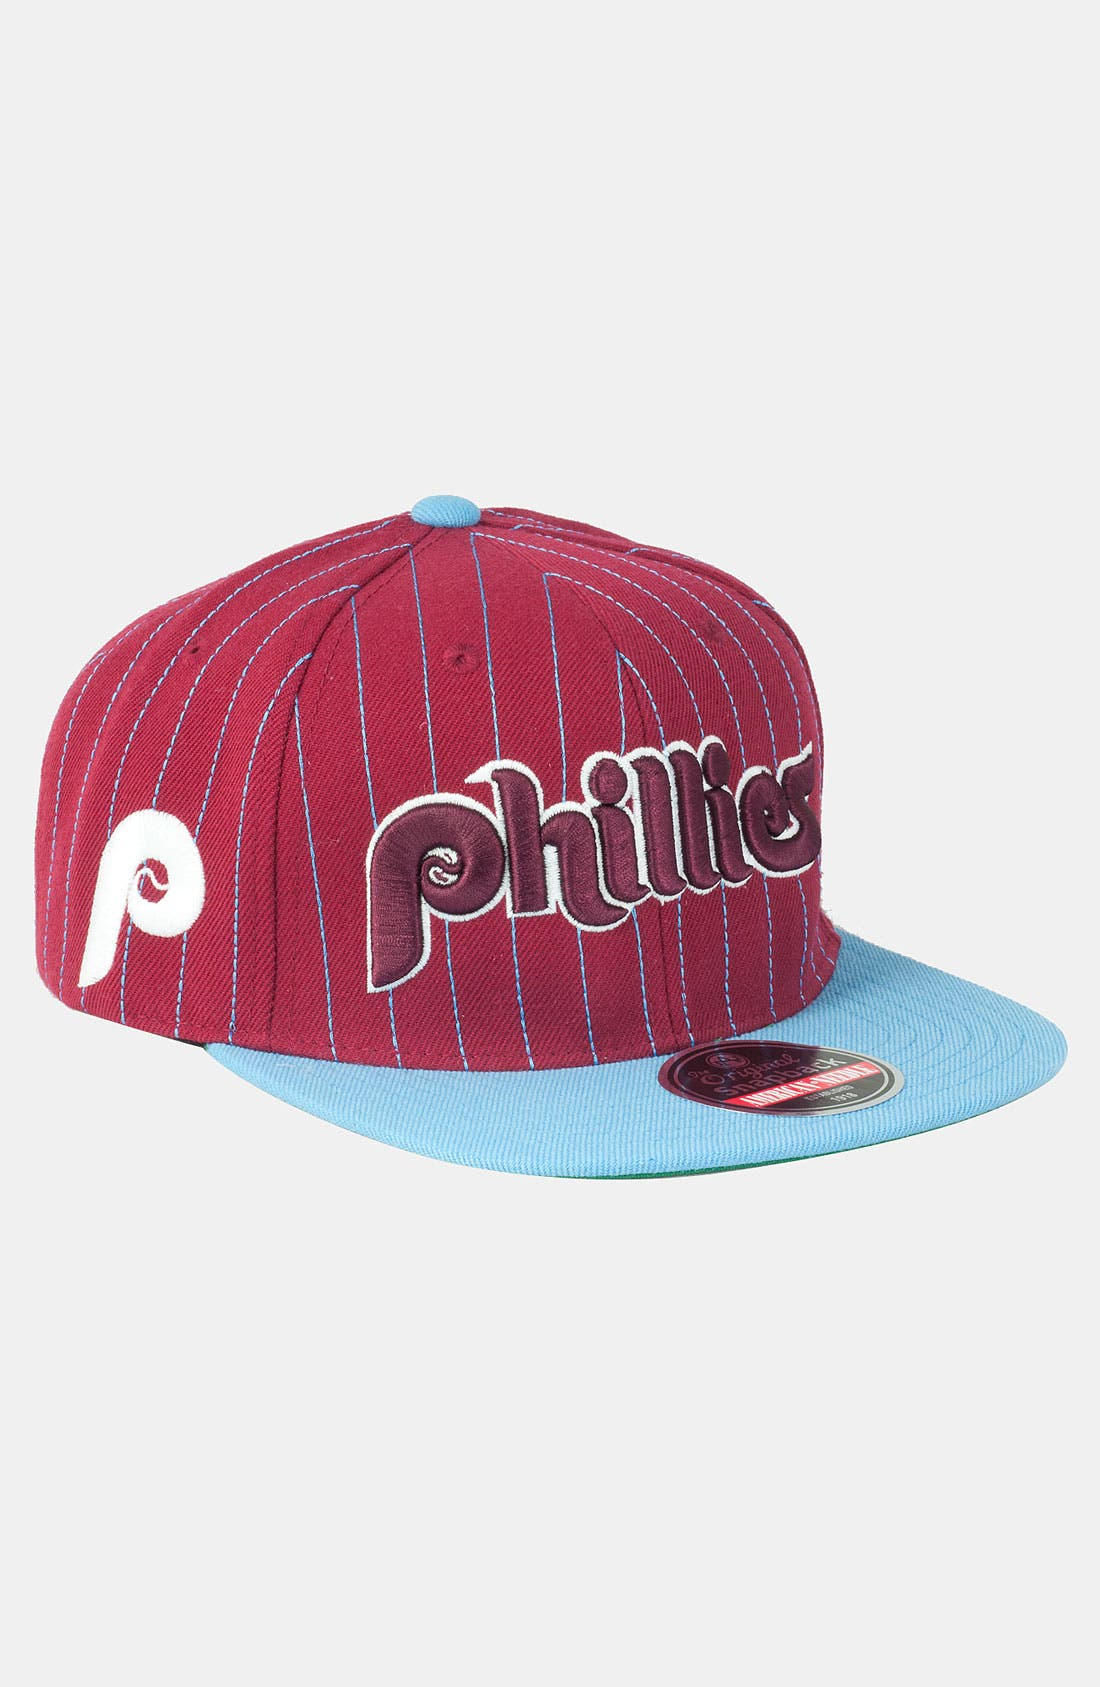 Alternate Image 1 Selected - American Needle 'Phillies' Snapback Baseball Cap